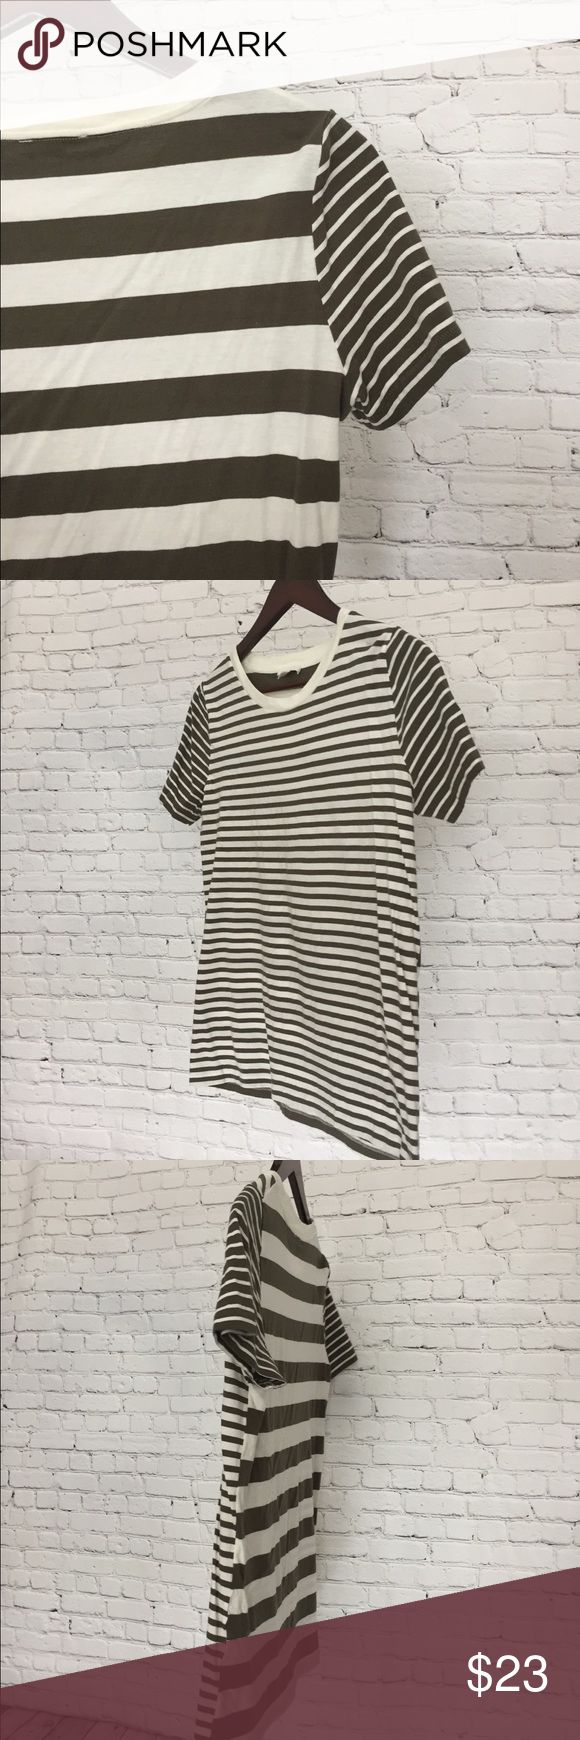 COS Army Green Striped T-Shirt Comfy and cute. Army green and white striped t-shirt from one of my favorite brands! Contrast stripes on the sleeve give it a modern feel. Stripes the the front are smaller than the back. Great condition, only worn a couple times.  COS is known for high quality basics and is a well-kept secret choice across fashion editors. COS Tops Tees - Short Sleeve